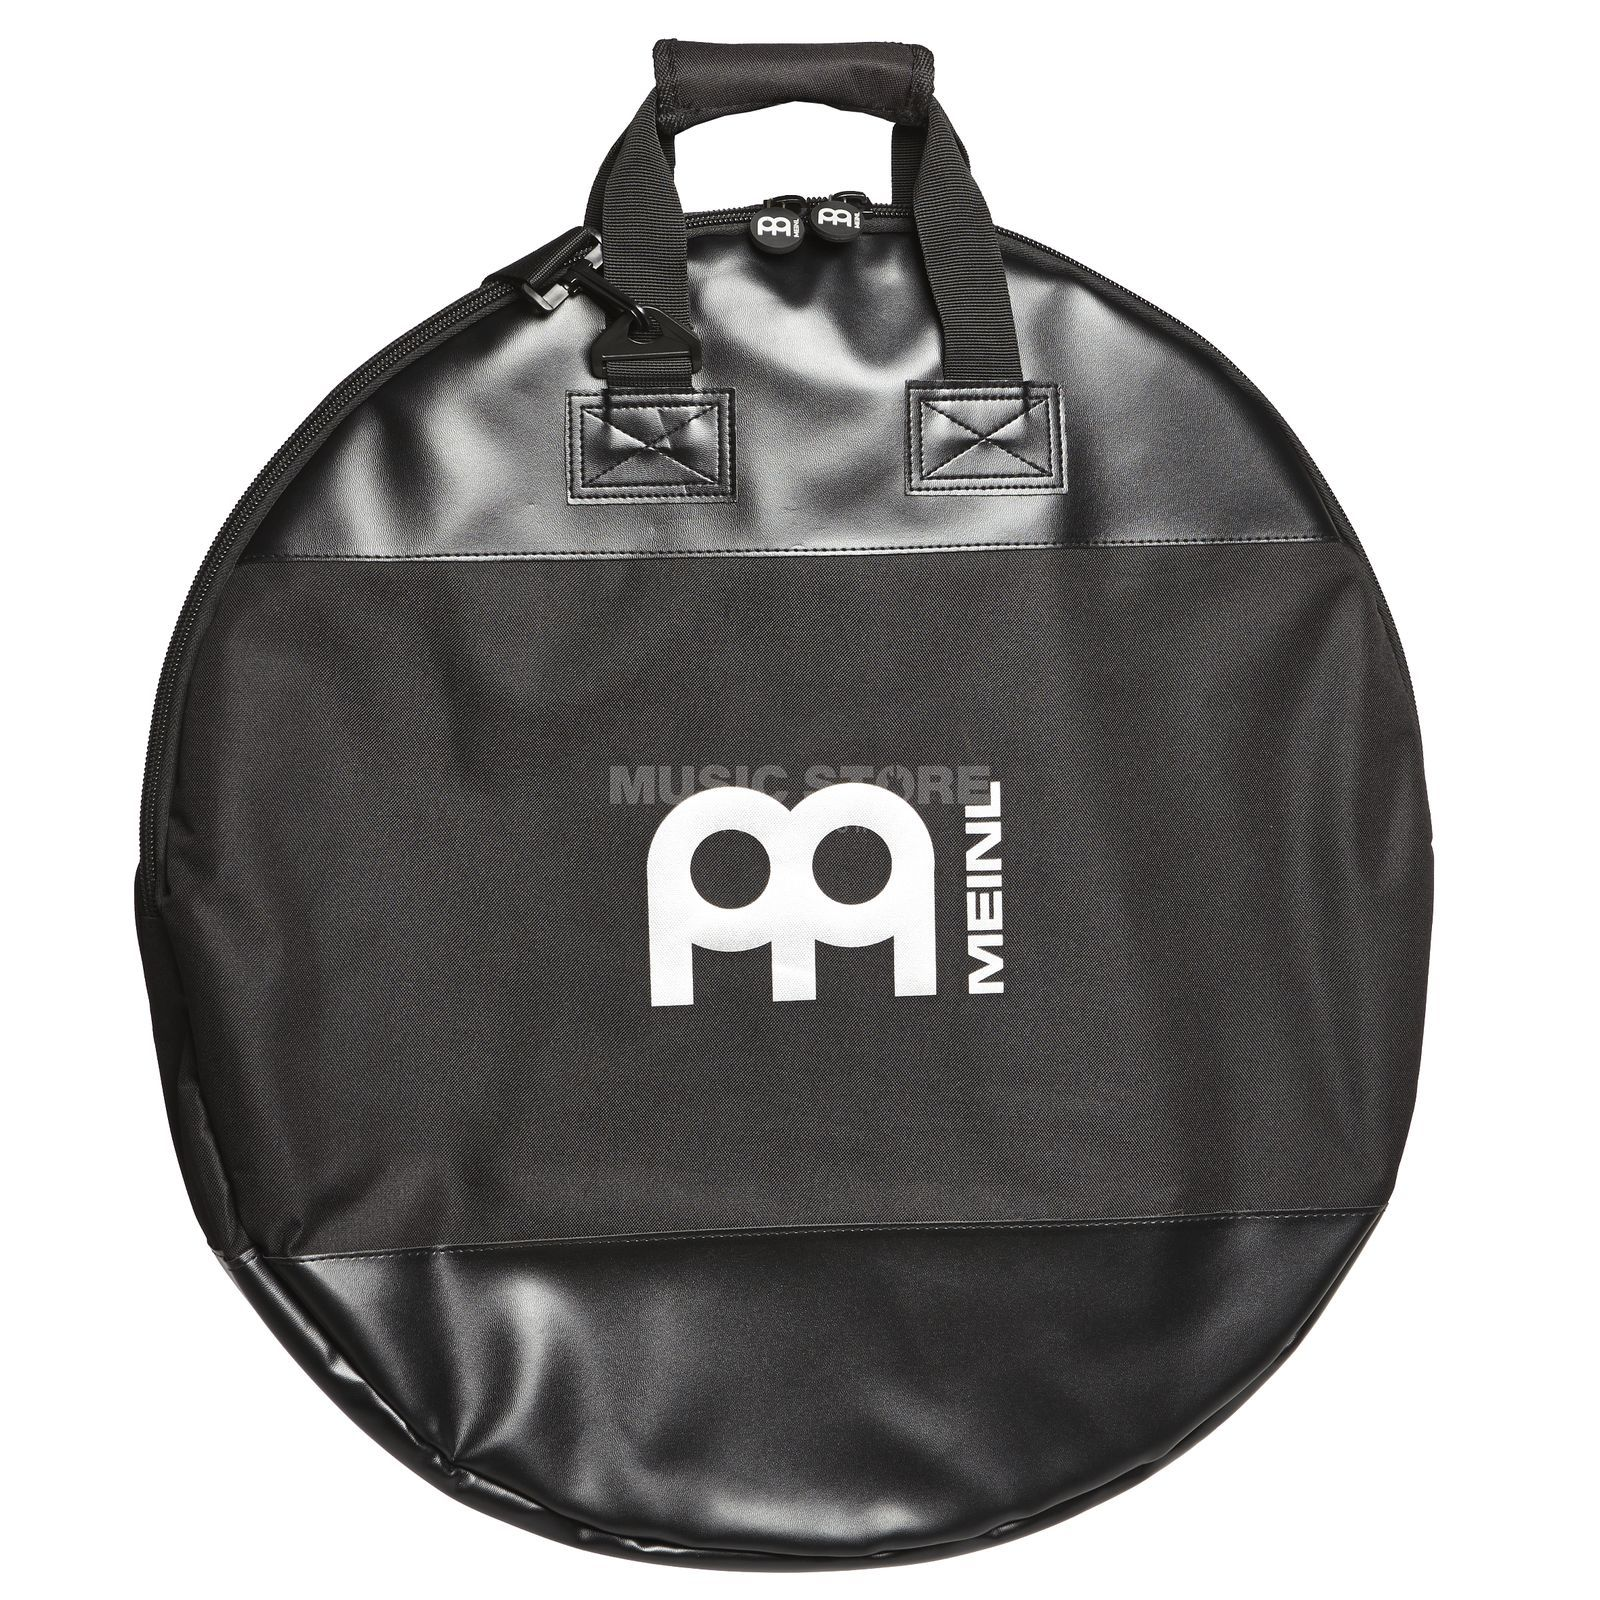 Meinl Cymbal Bag MSTCB22 Standard, Black Product Image